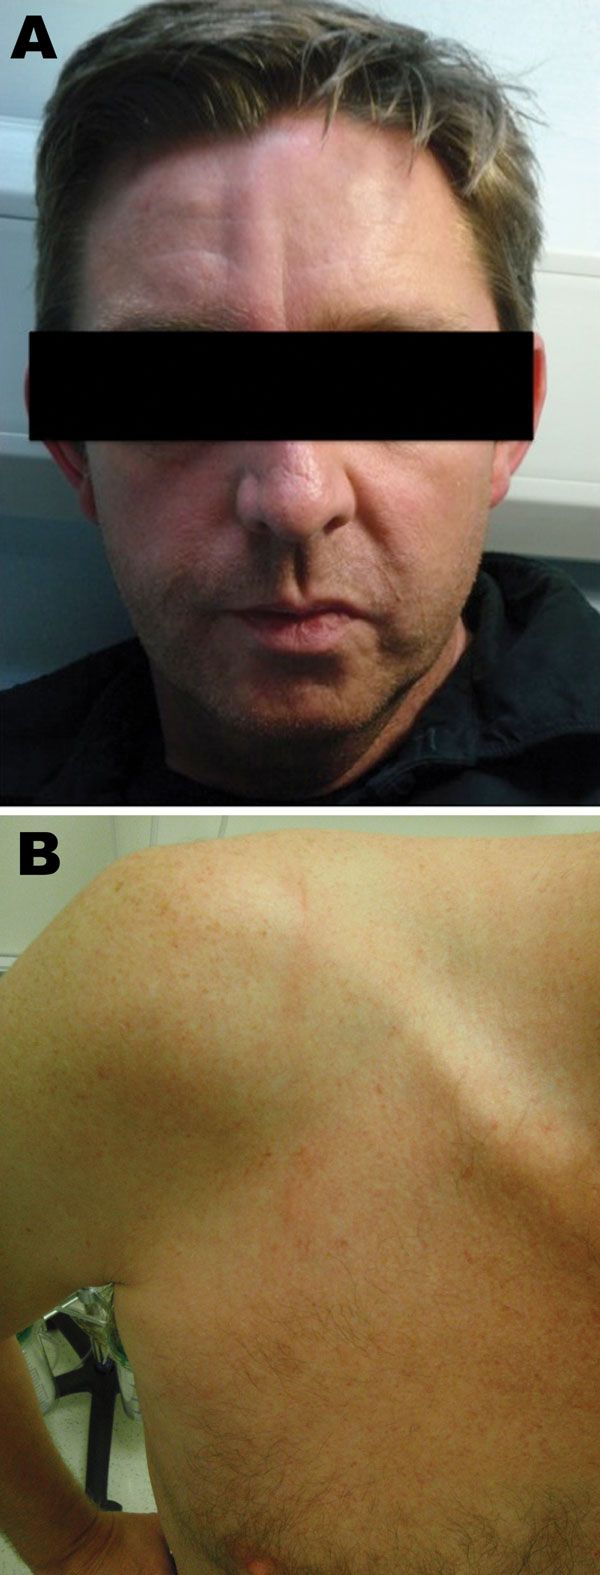 Cutaneous larva migrans on the forehead (A) and shoulder (B) of a male British tourist who had visited Botswana.